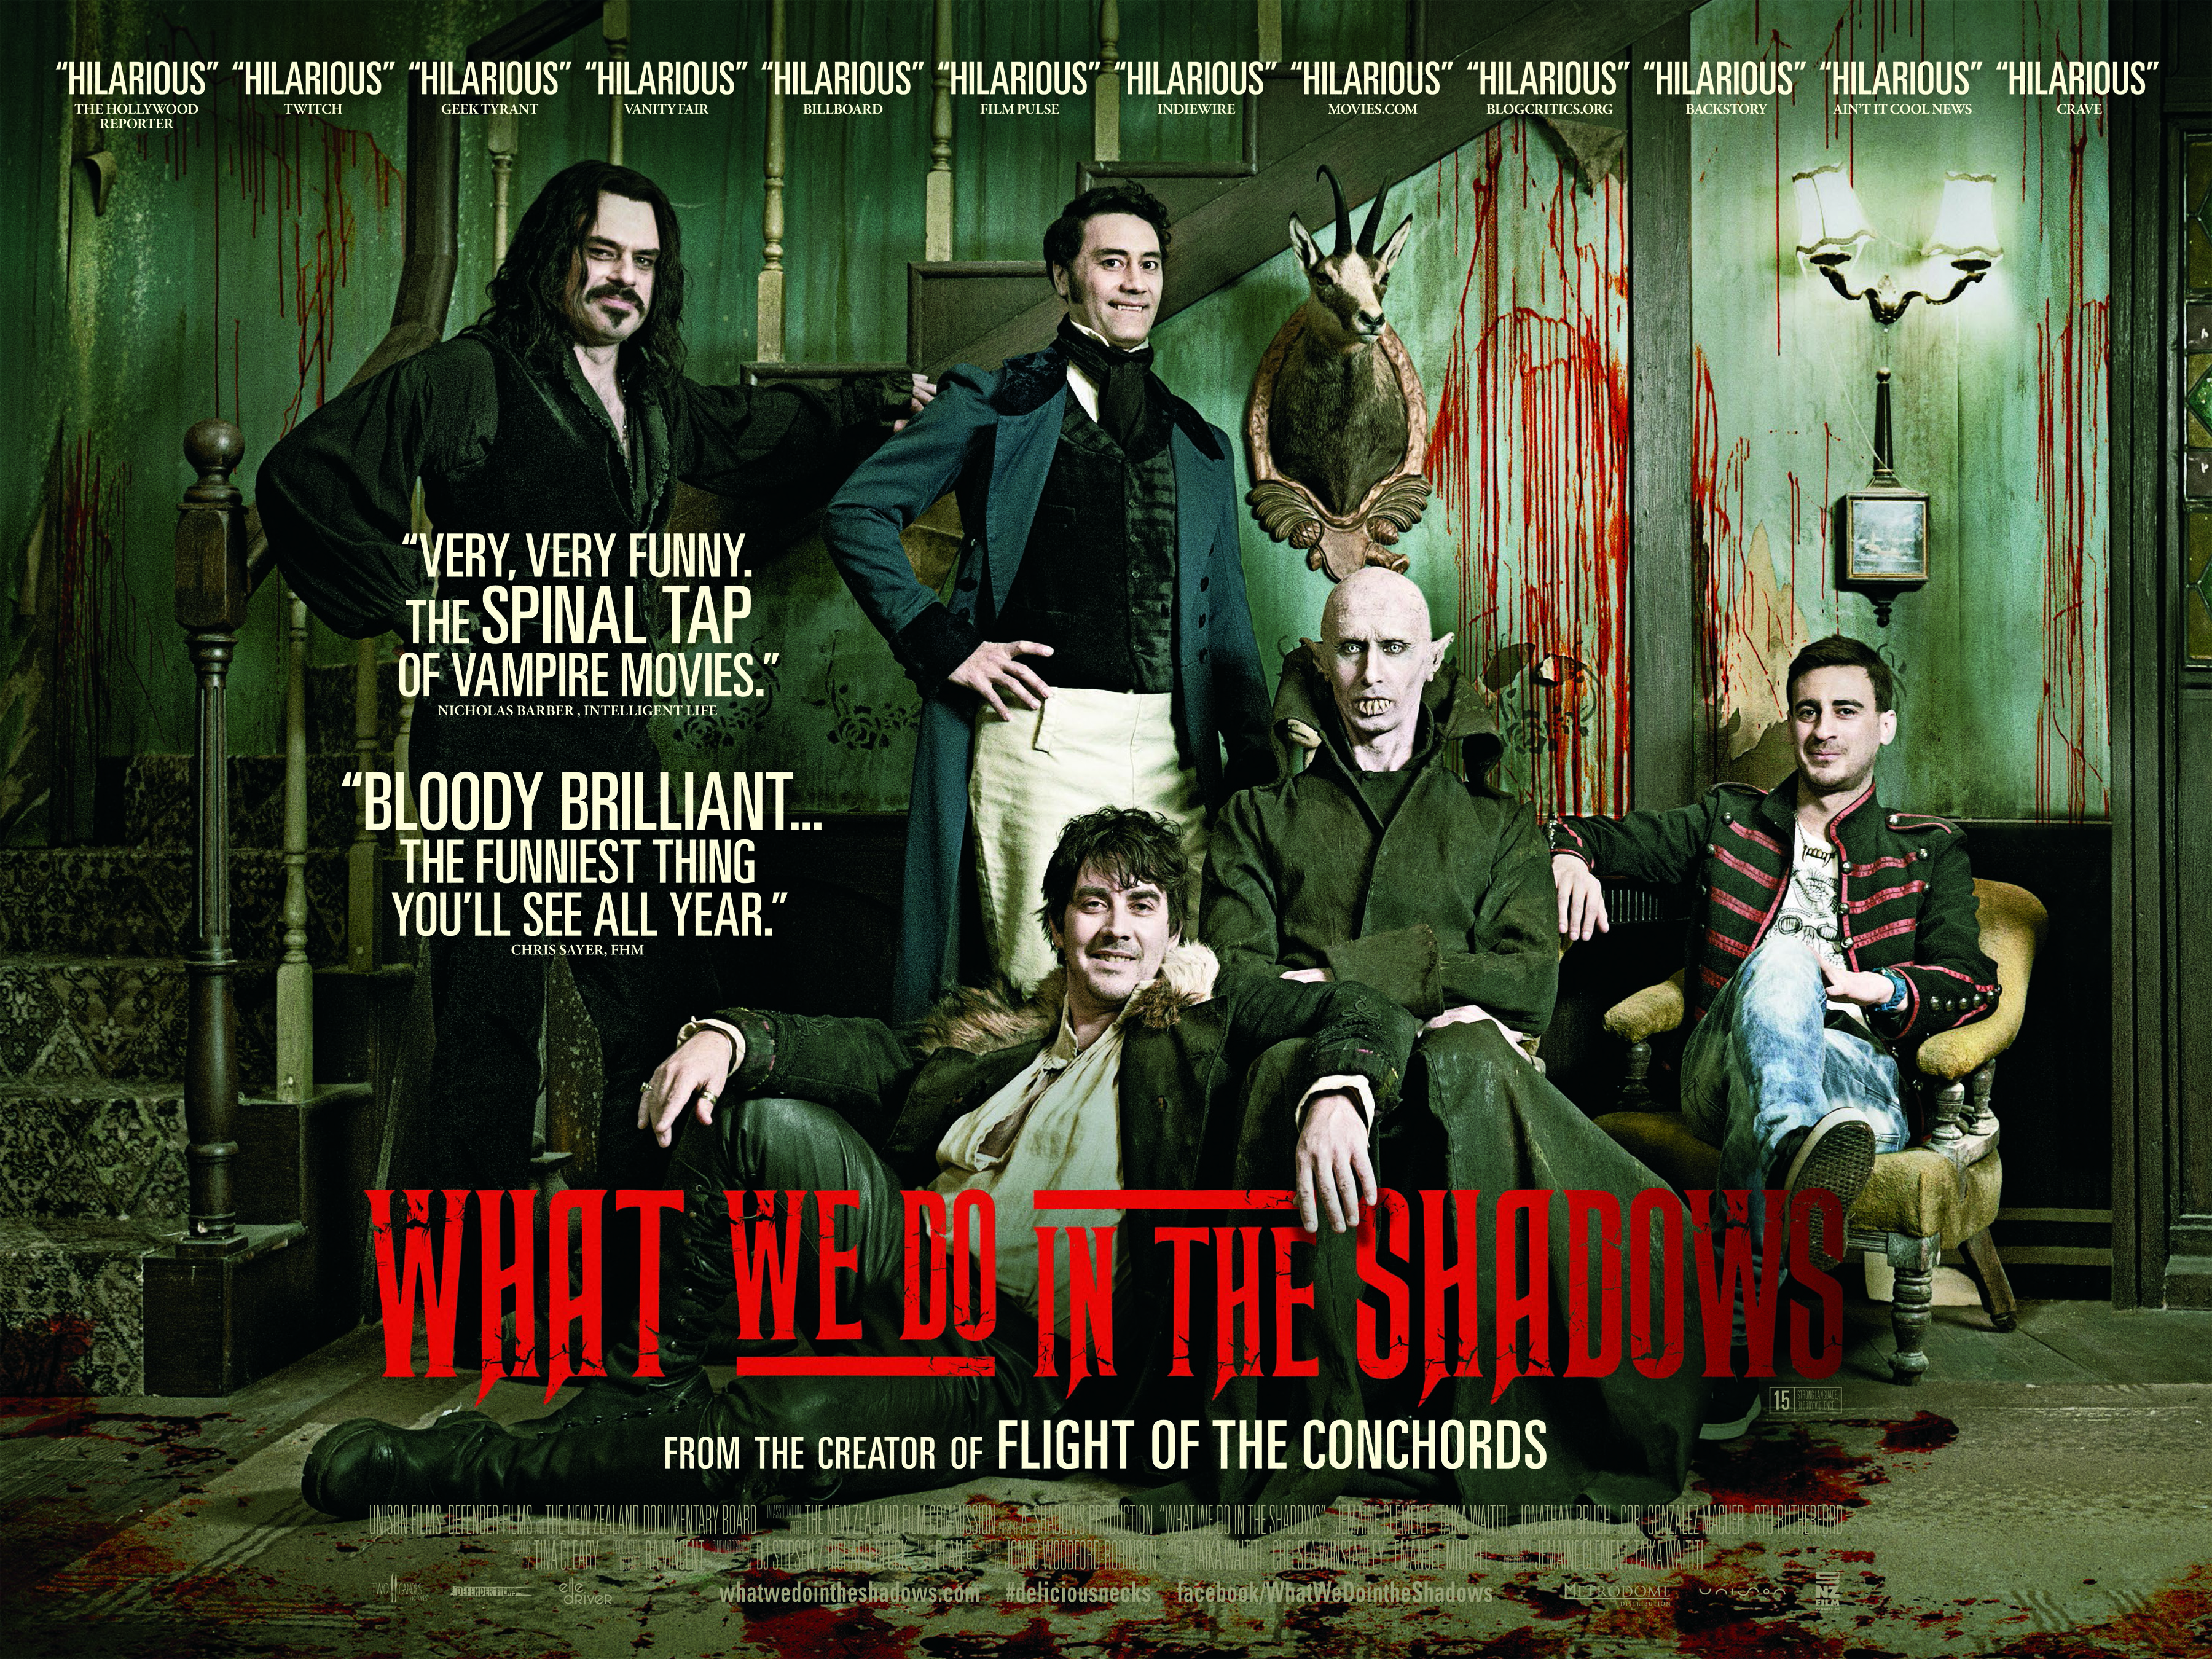 what-we-do-in-the-shadows-film-poster-vampires-2014-mockumentary